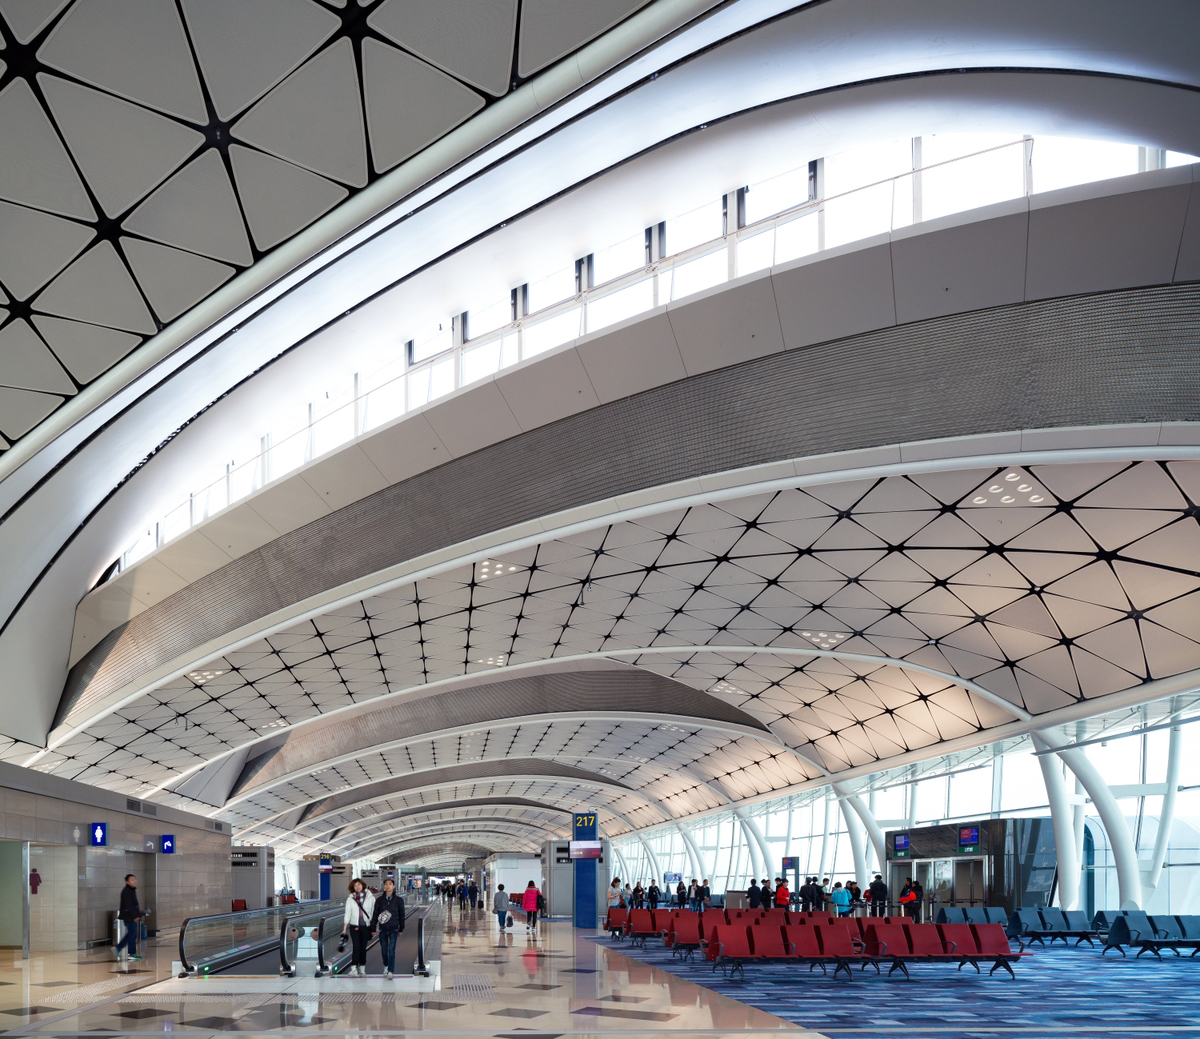 Hong Kong International Airport Midfield Concourse, Hong Kong. Credit: Aedas.